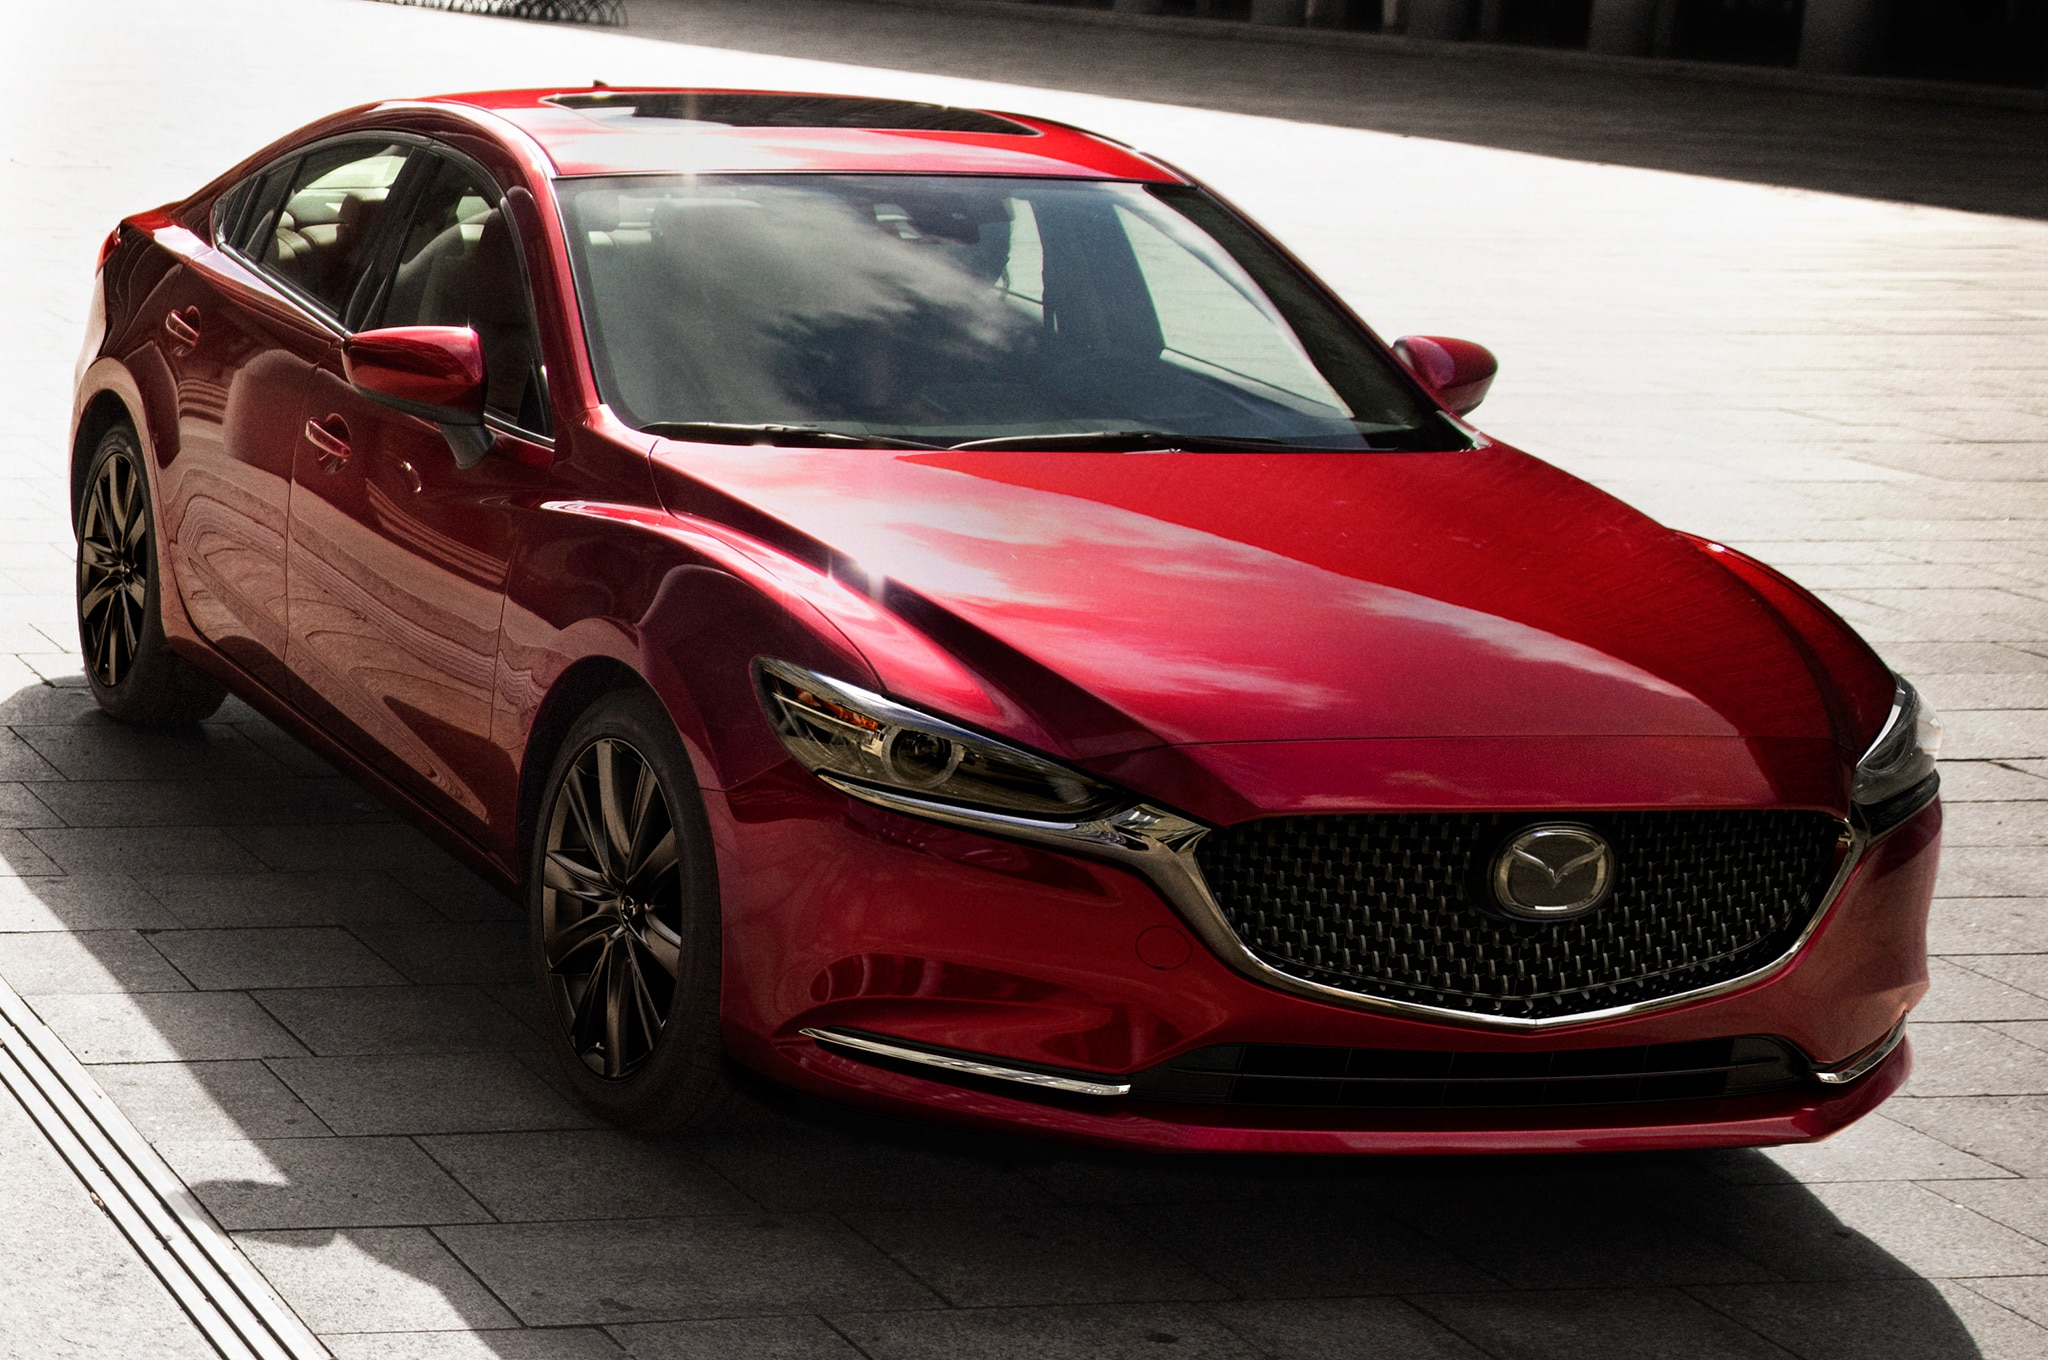 2018 Mazda6 Front Side View Parked